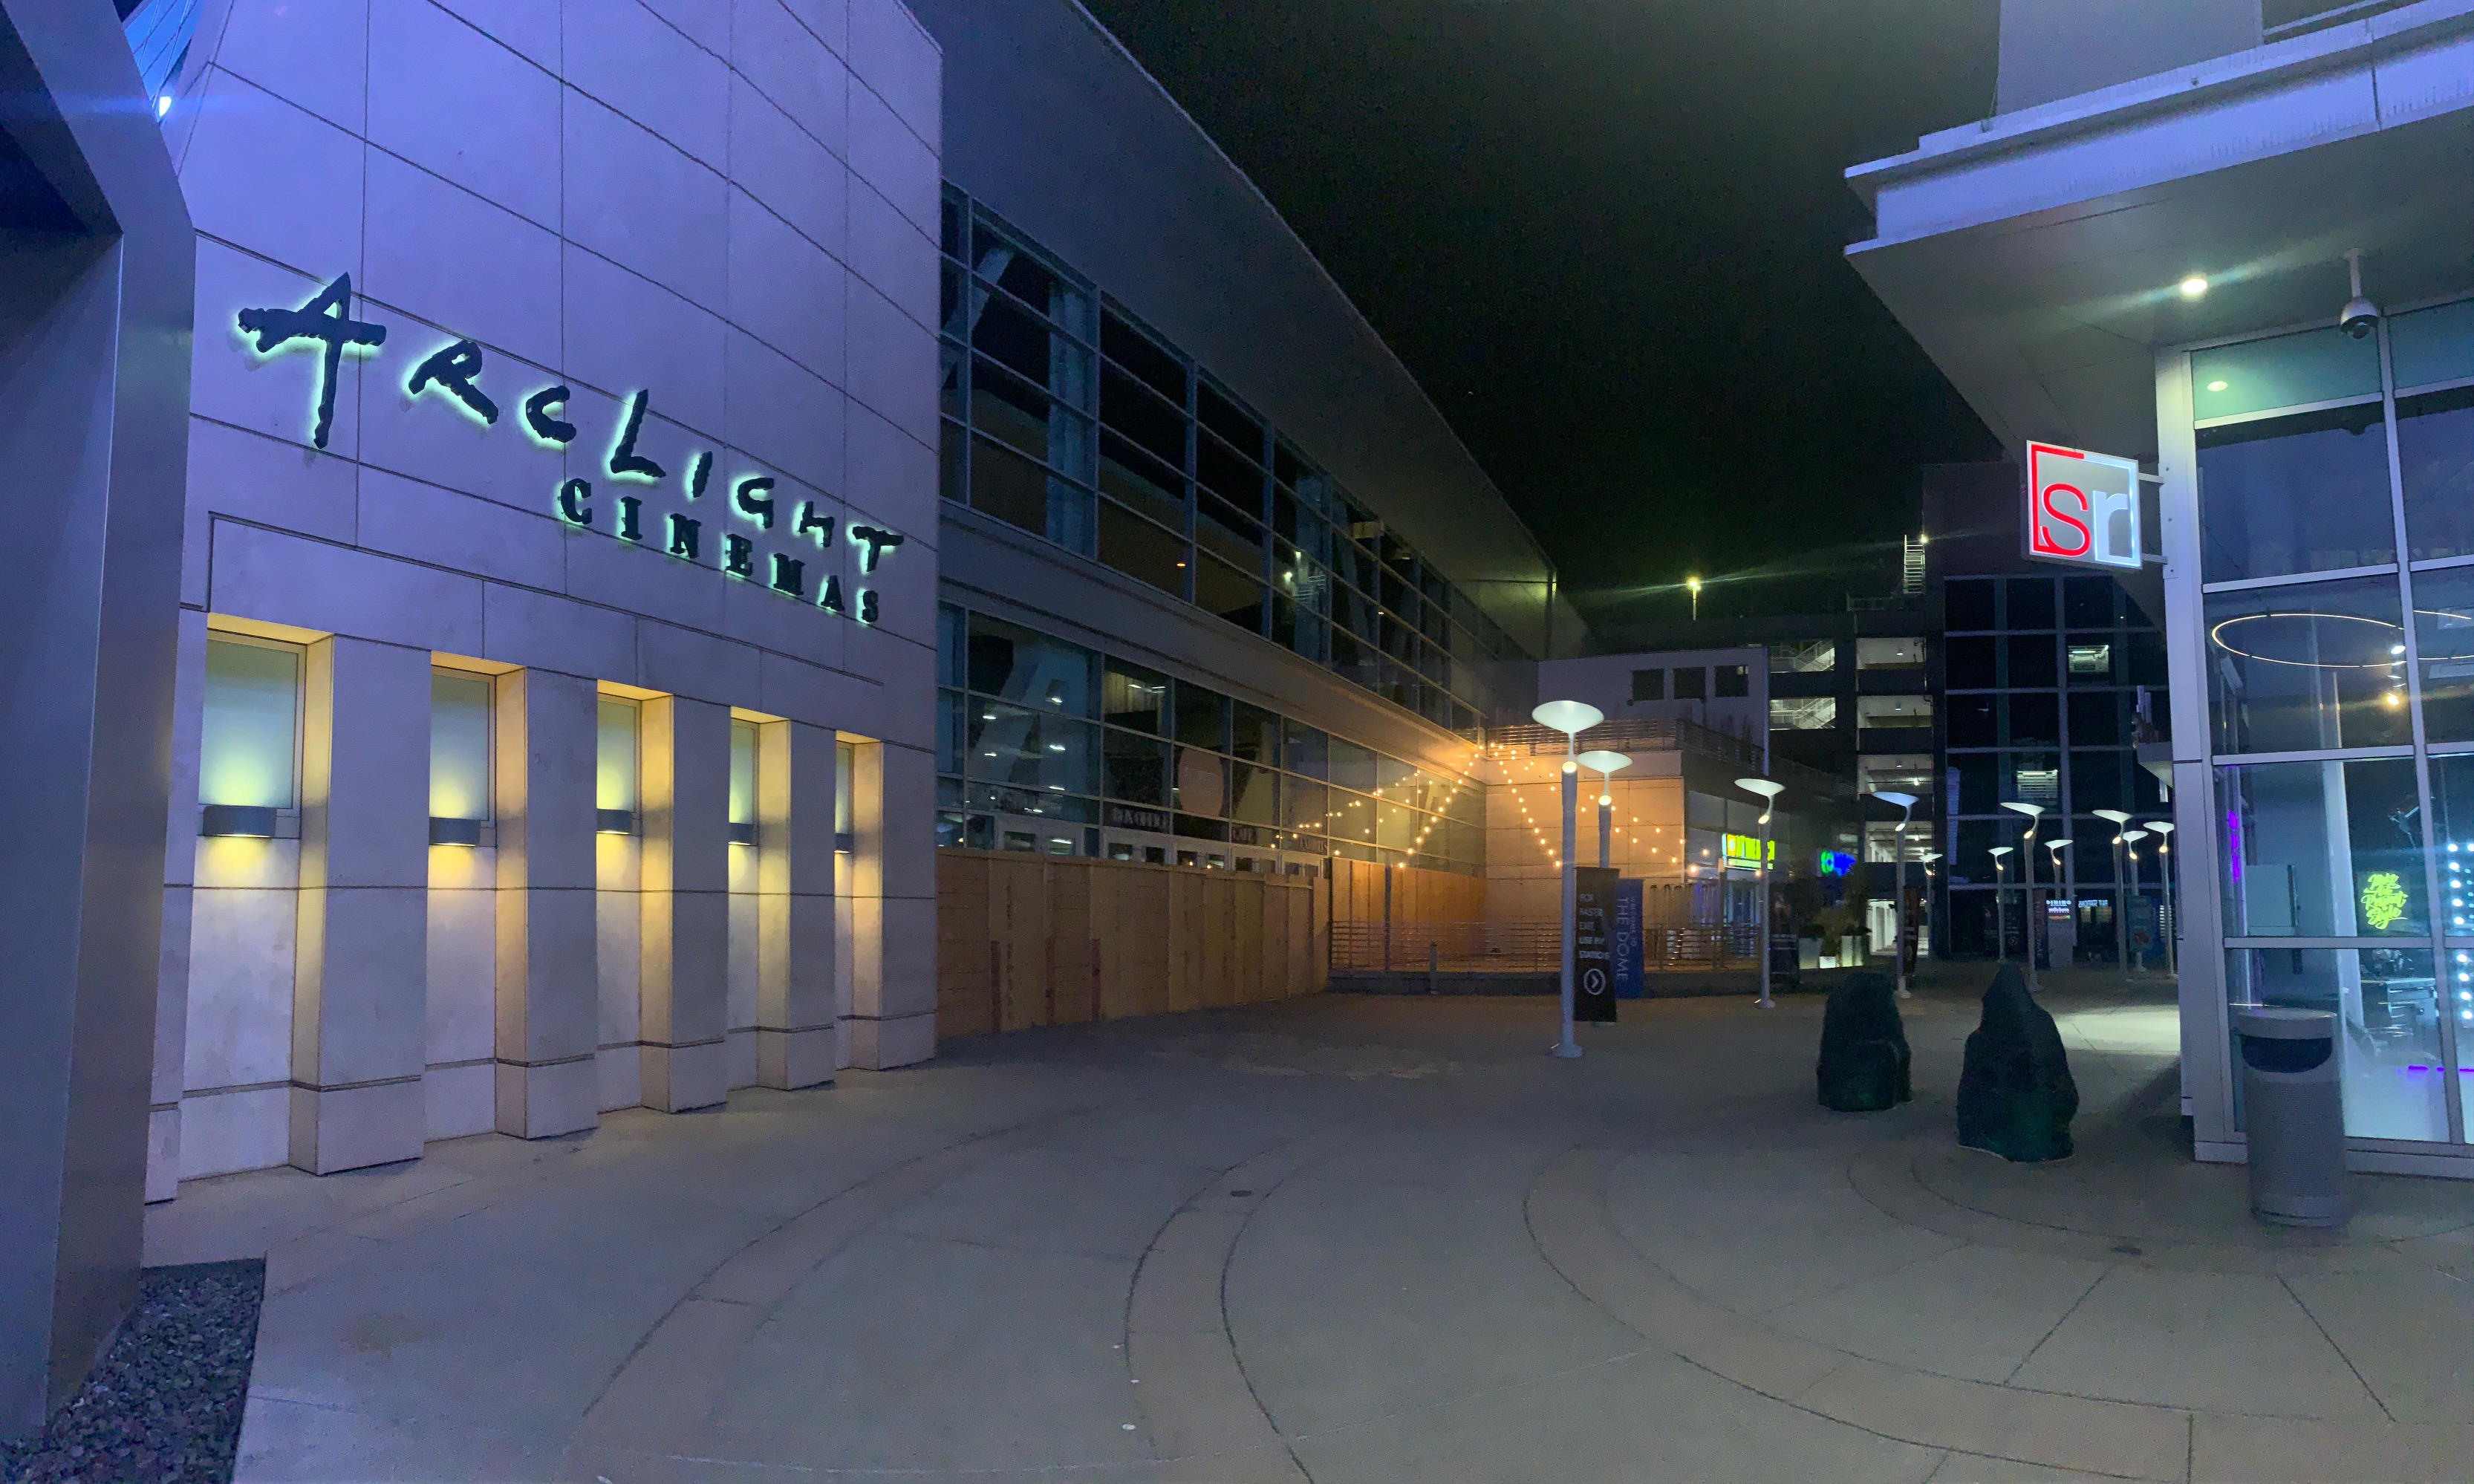 arclight theater